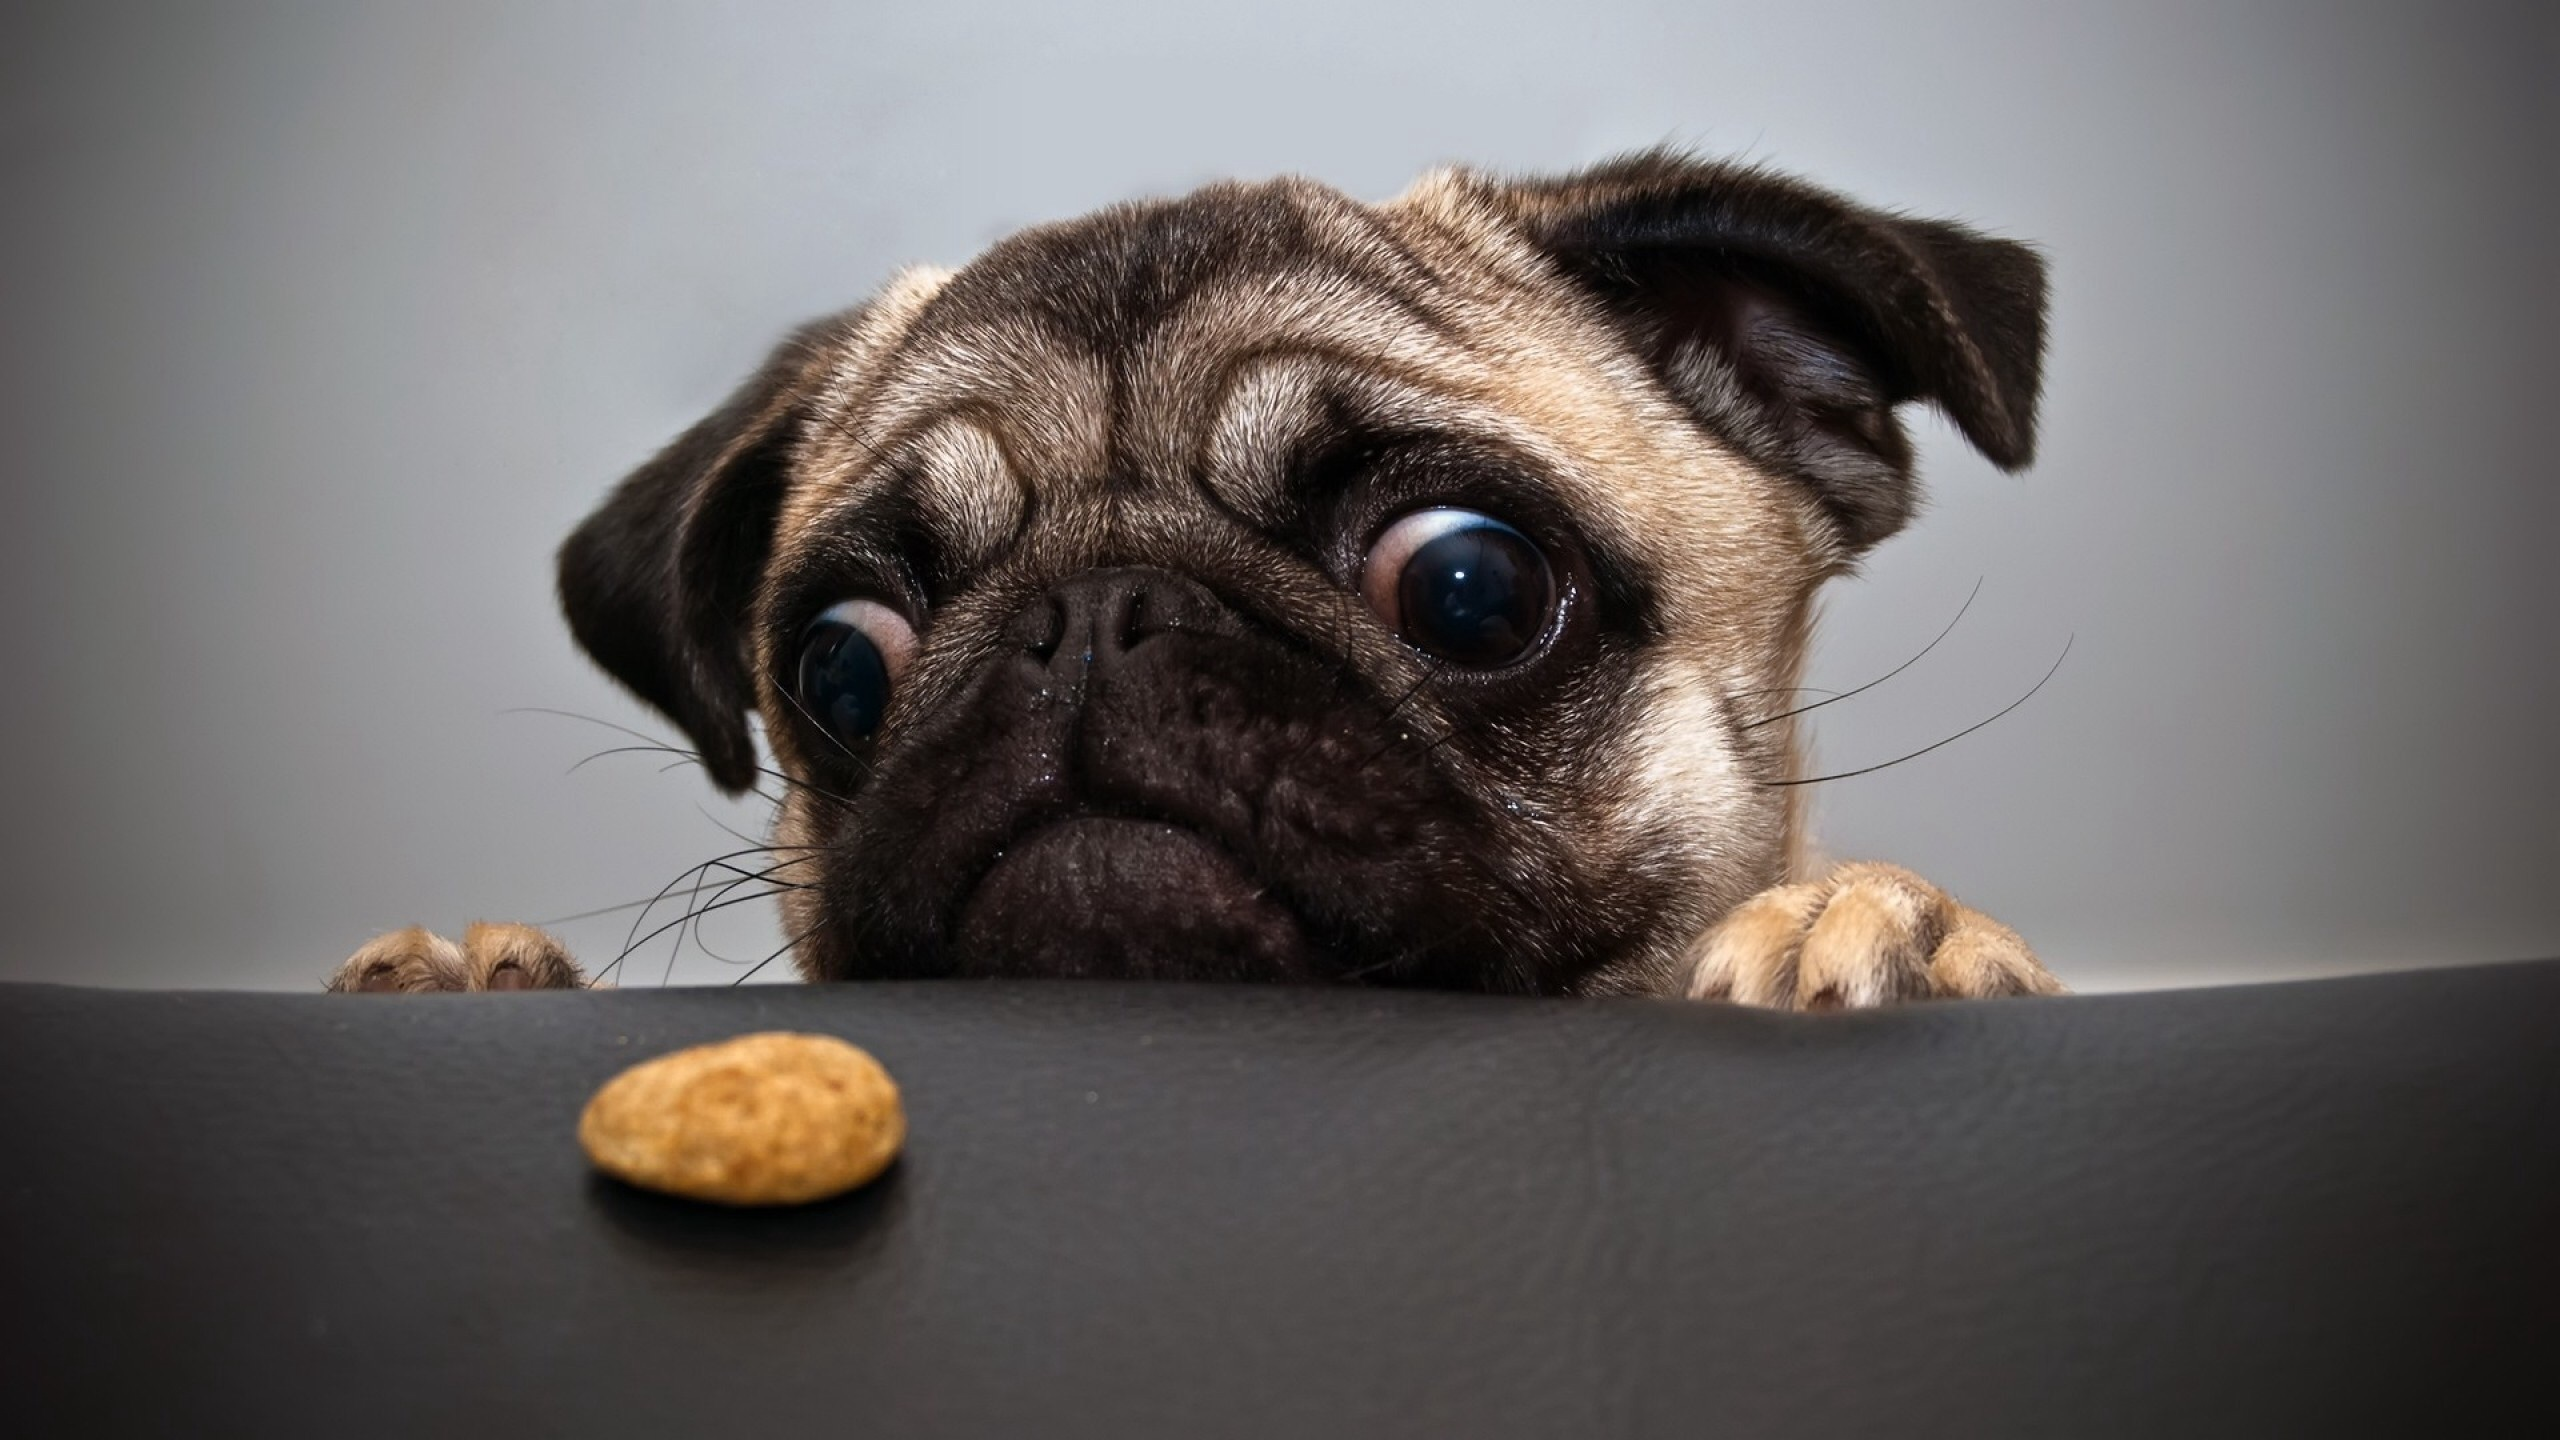 Adorable Dog Photos Cute Wallpapers Download Free Cute Hd Cute 2560x1440